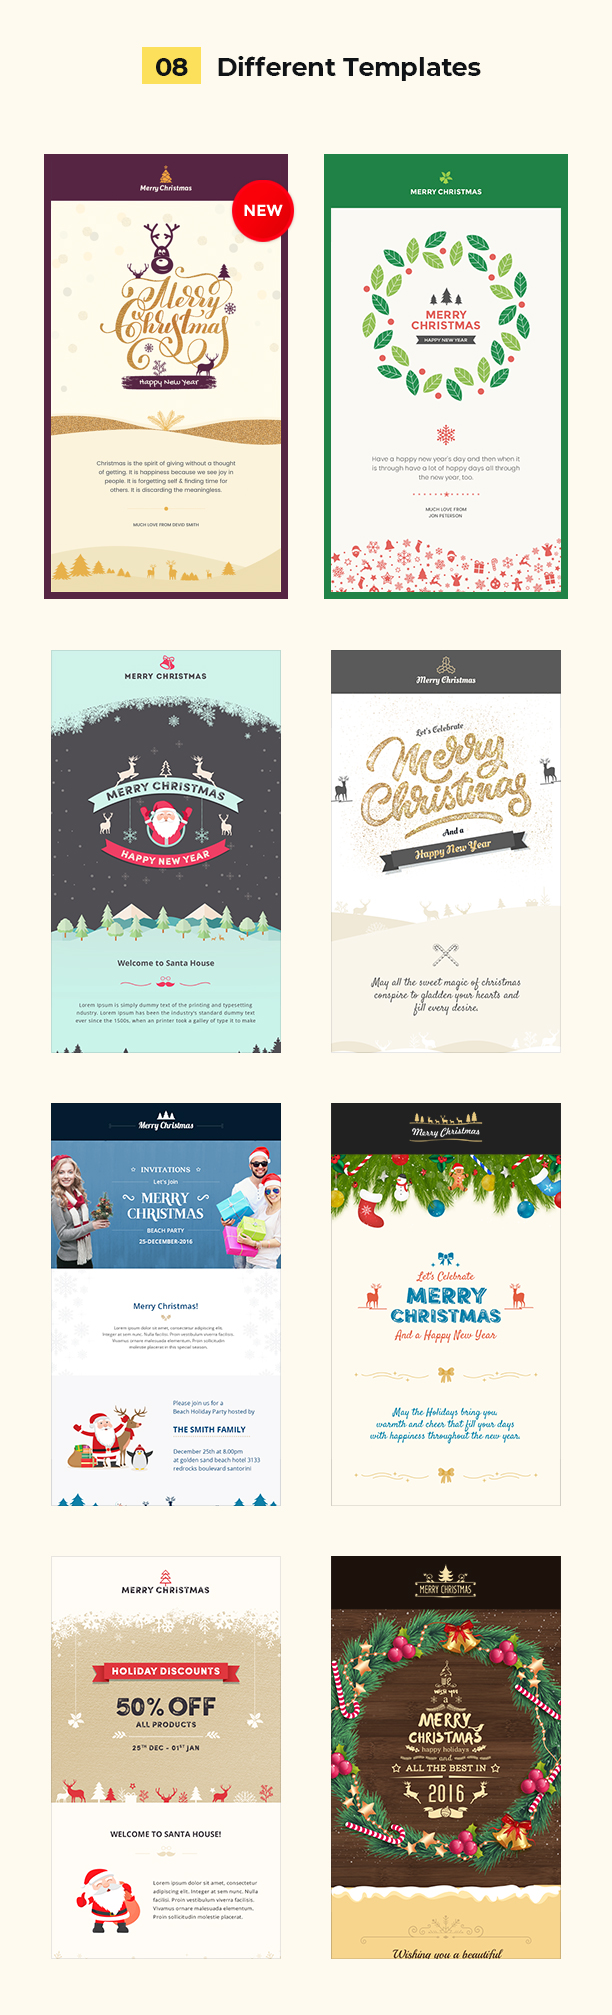 Christmas And New Year Responsive Email Template With Builder By - Mailchimp holiday templates